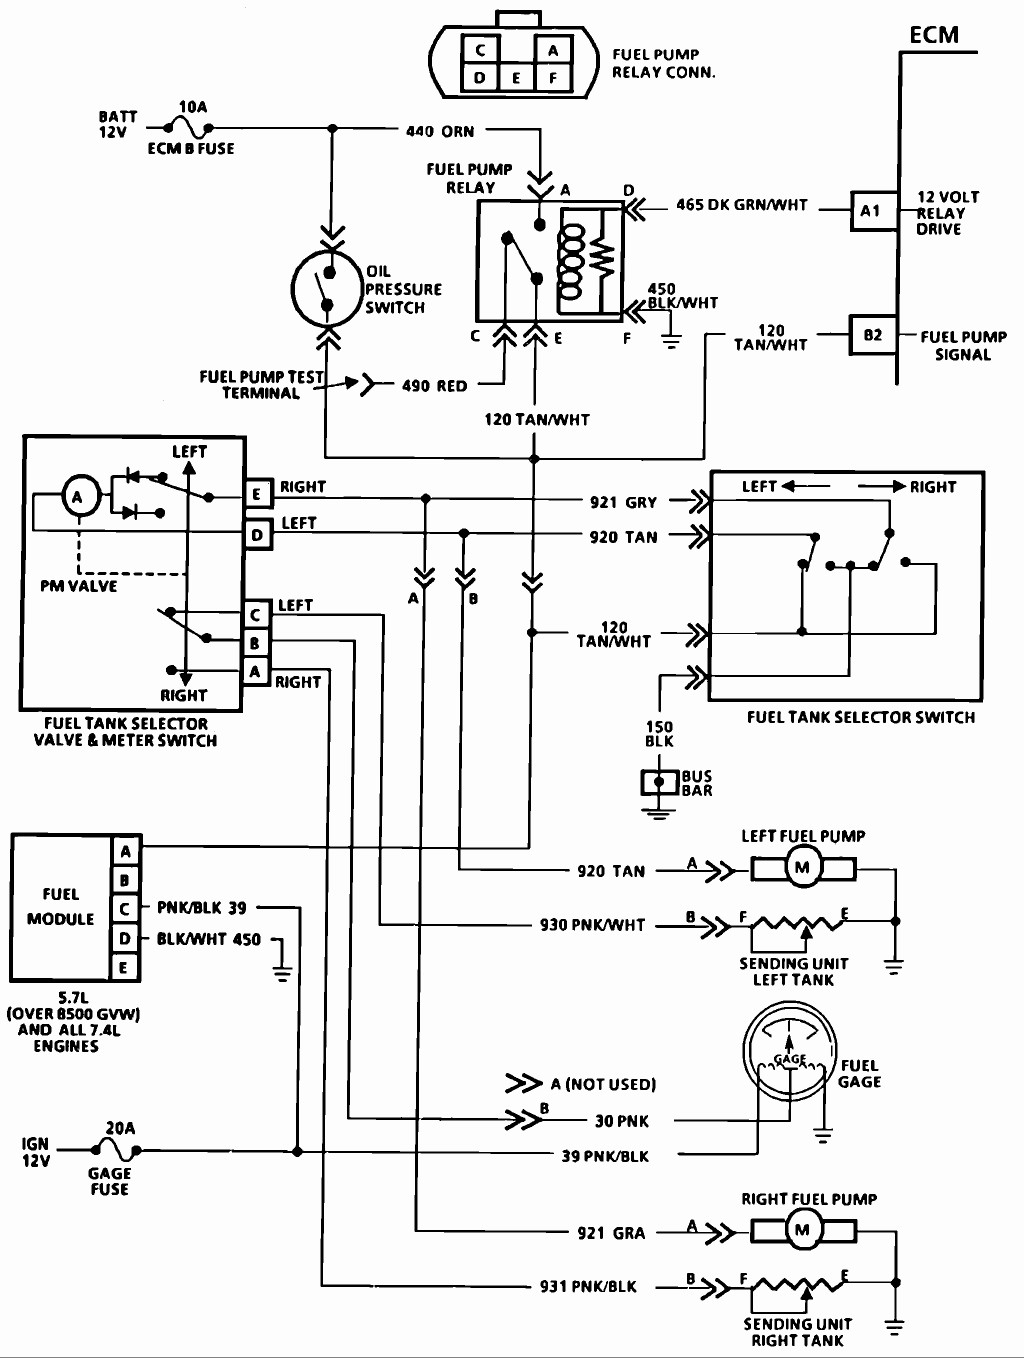 1997 Chevrolet Cavalier Fuel Pump Wiring Diagram Trusted Fuse Gmc Data Schema U2022 Saturn Sl2